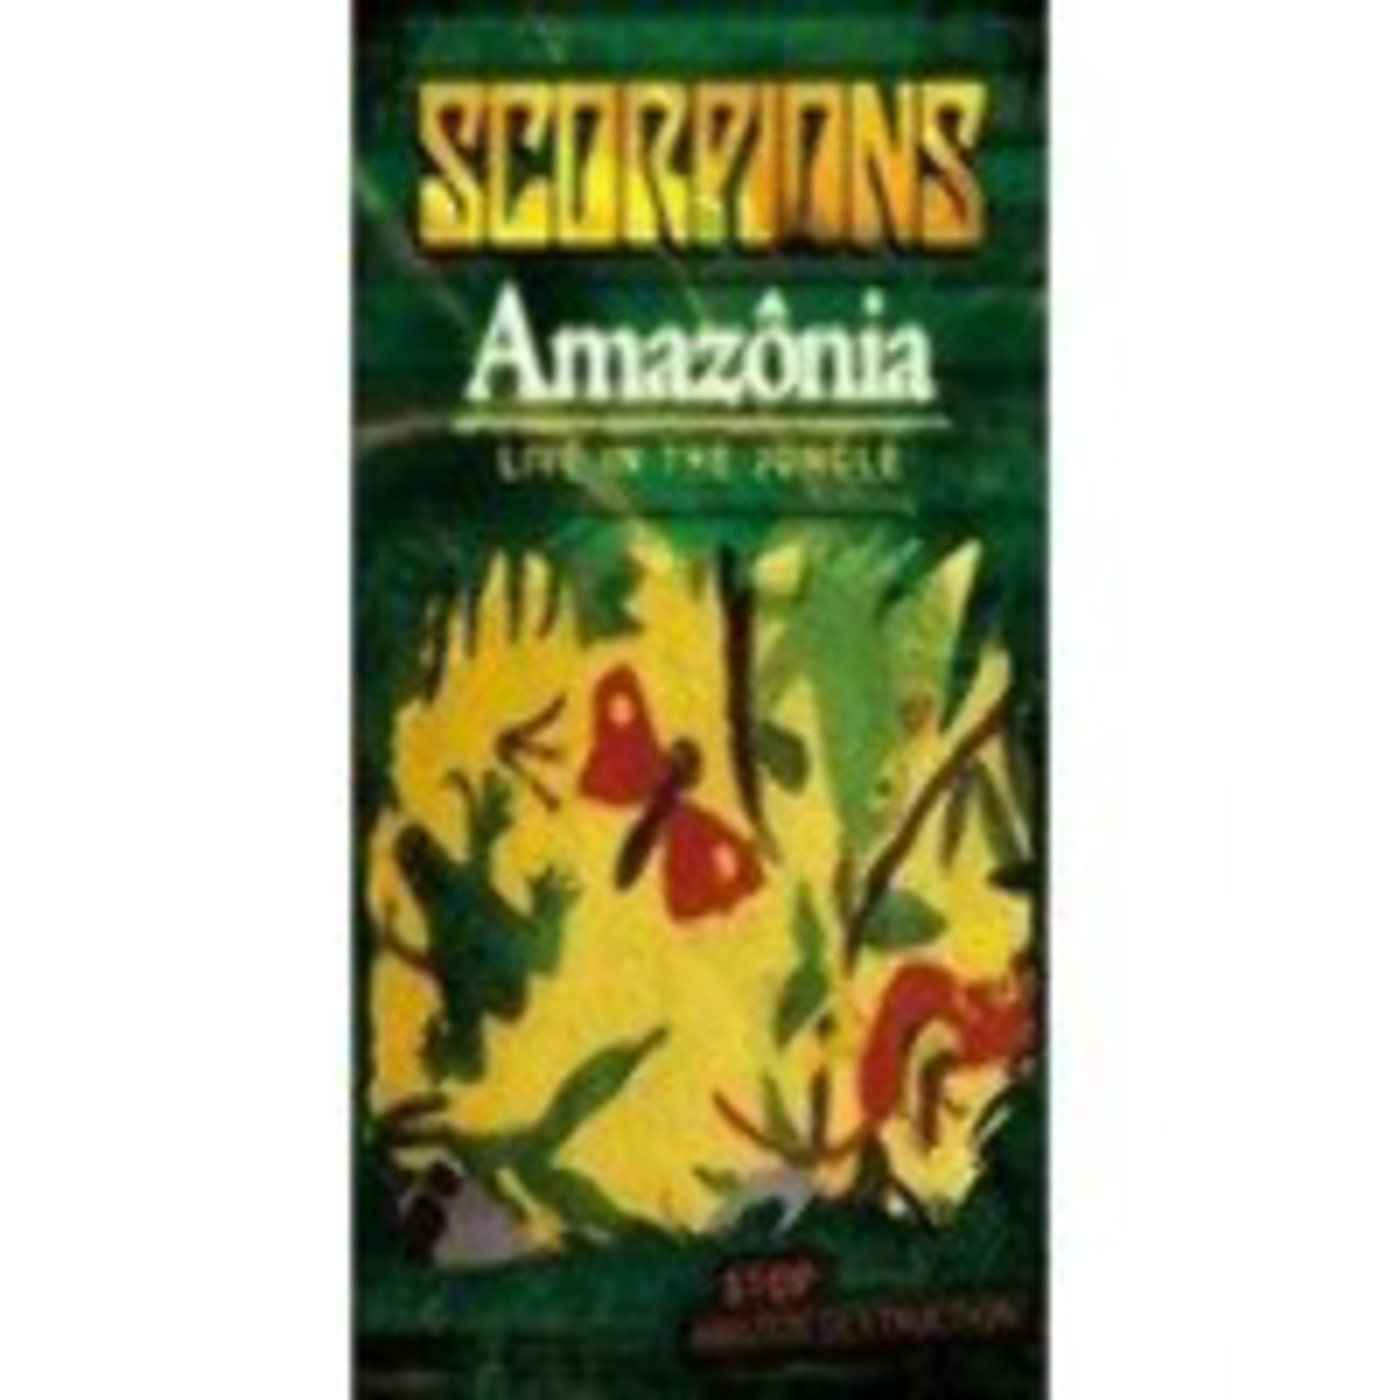 In CONCERT - Scorpions Live Amazonia In The Jungle